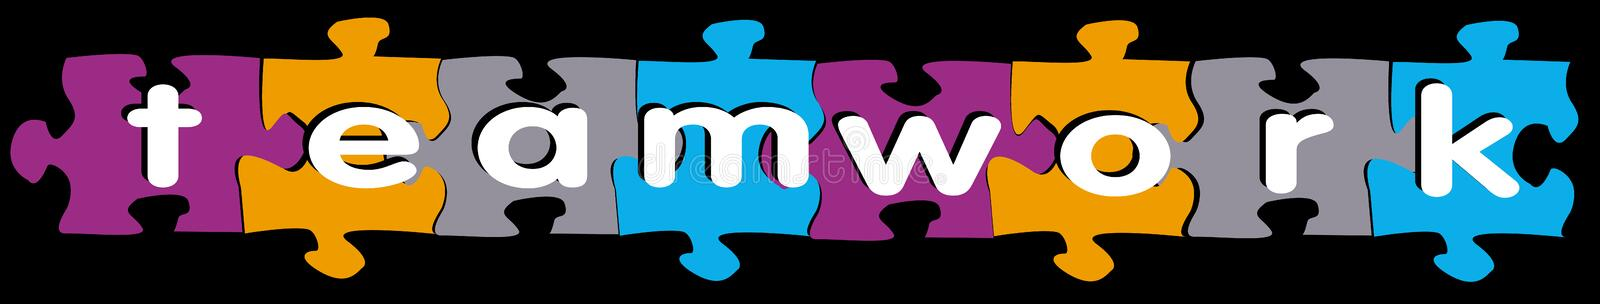 Teamwork puzzle. An image showing the word teamwork placed over a colourful jigsaw background royalty free illustration